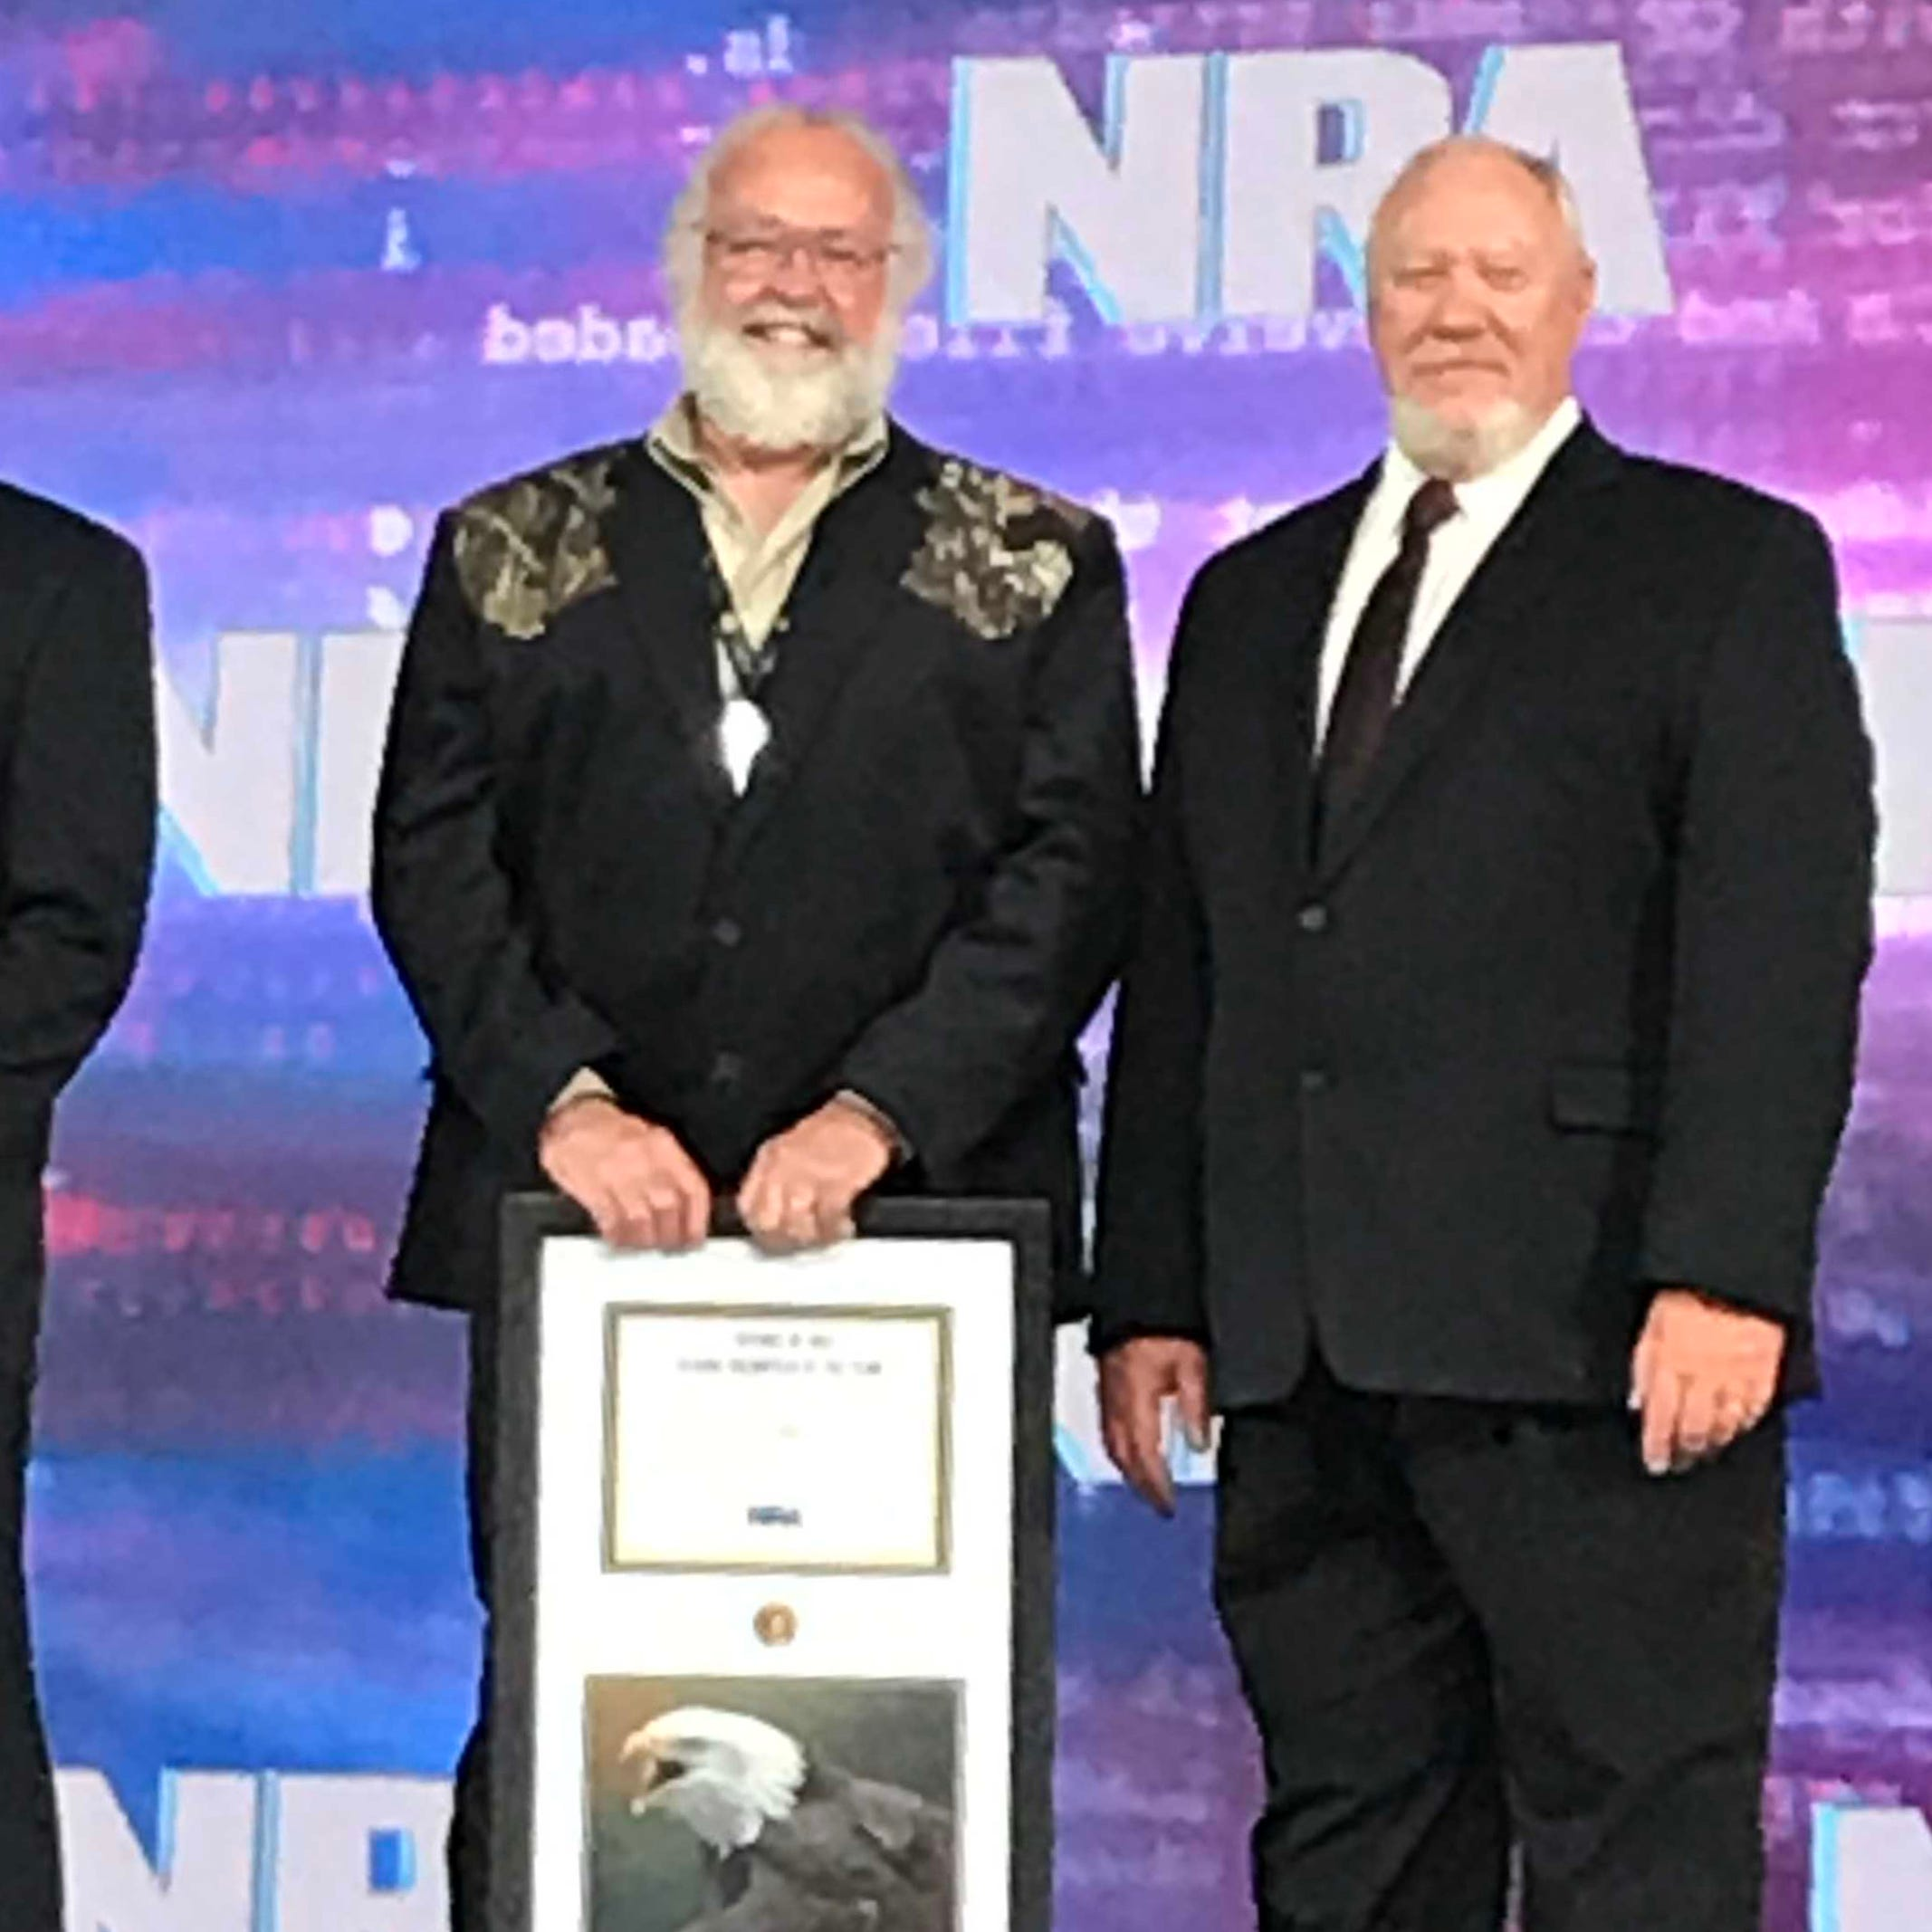 Pagath recognized for volunteer work with Friends of the NRA